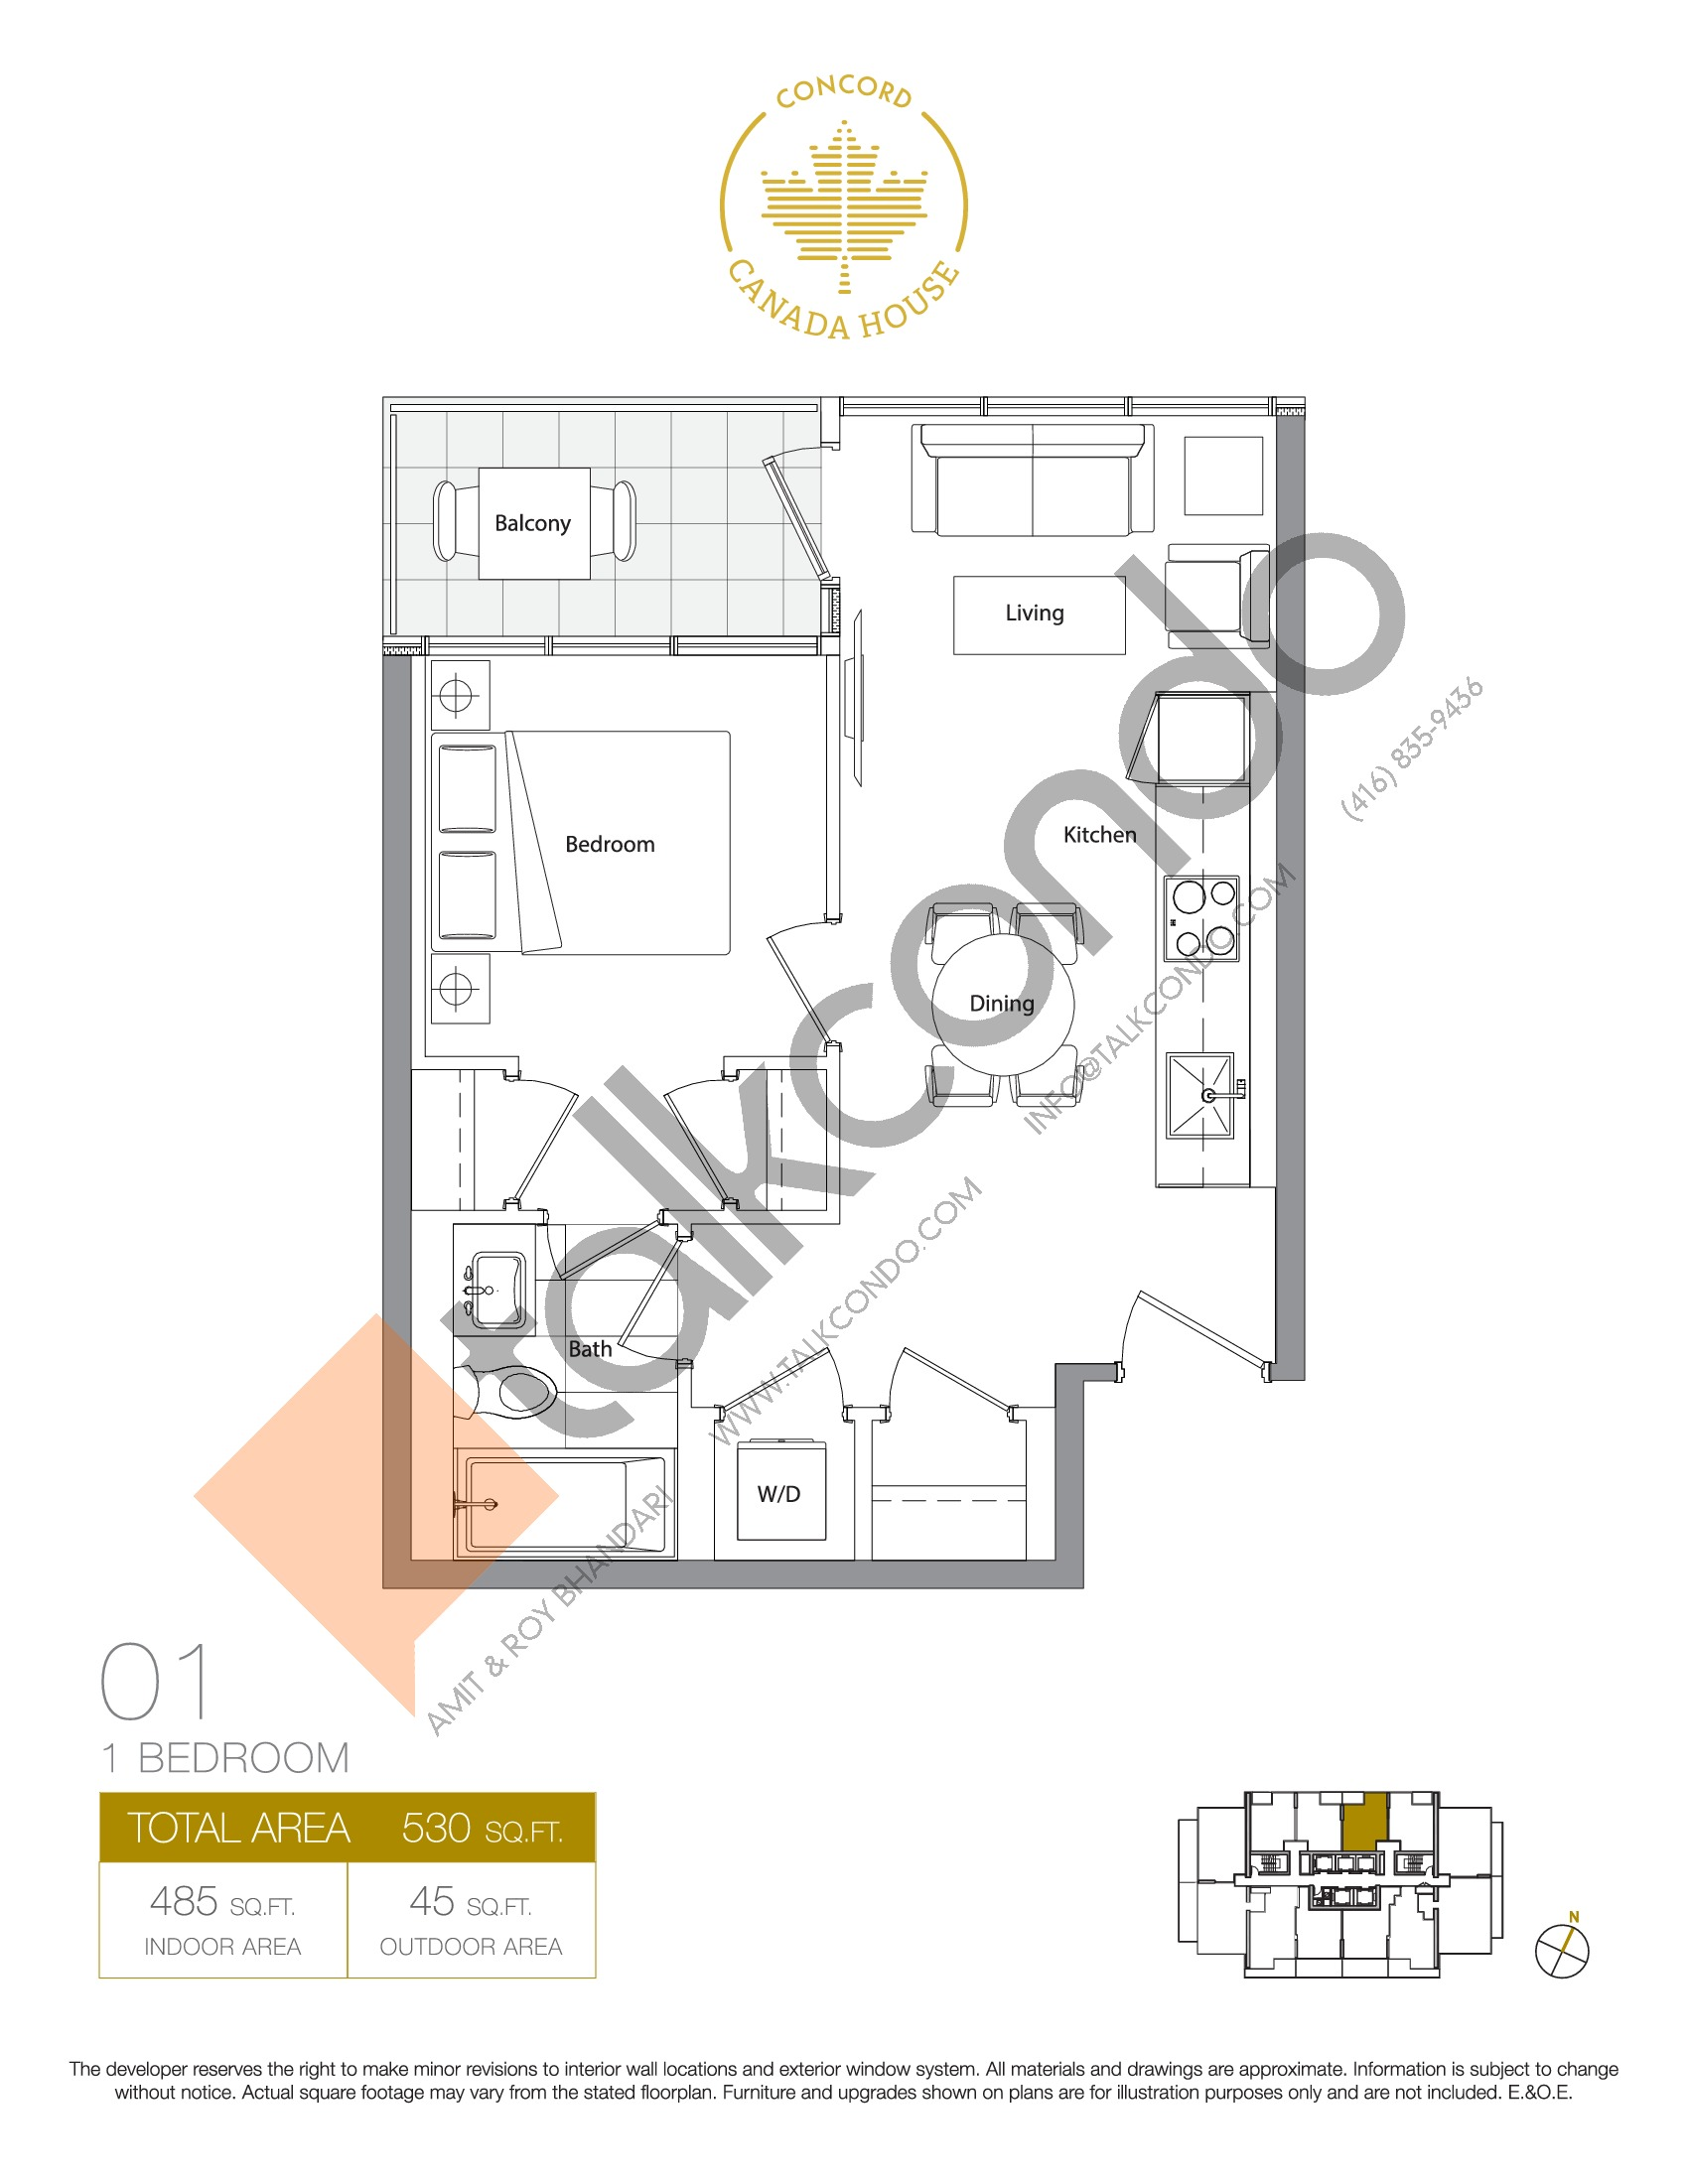 01 - East Tower Floor Plan at Concord Canada House Condos - 485 sq.ft